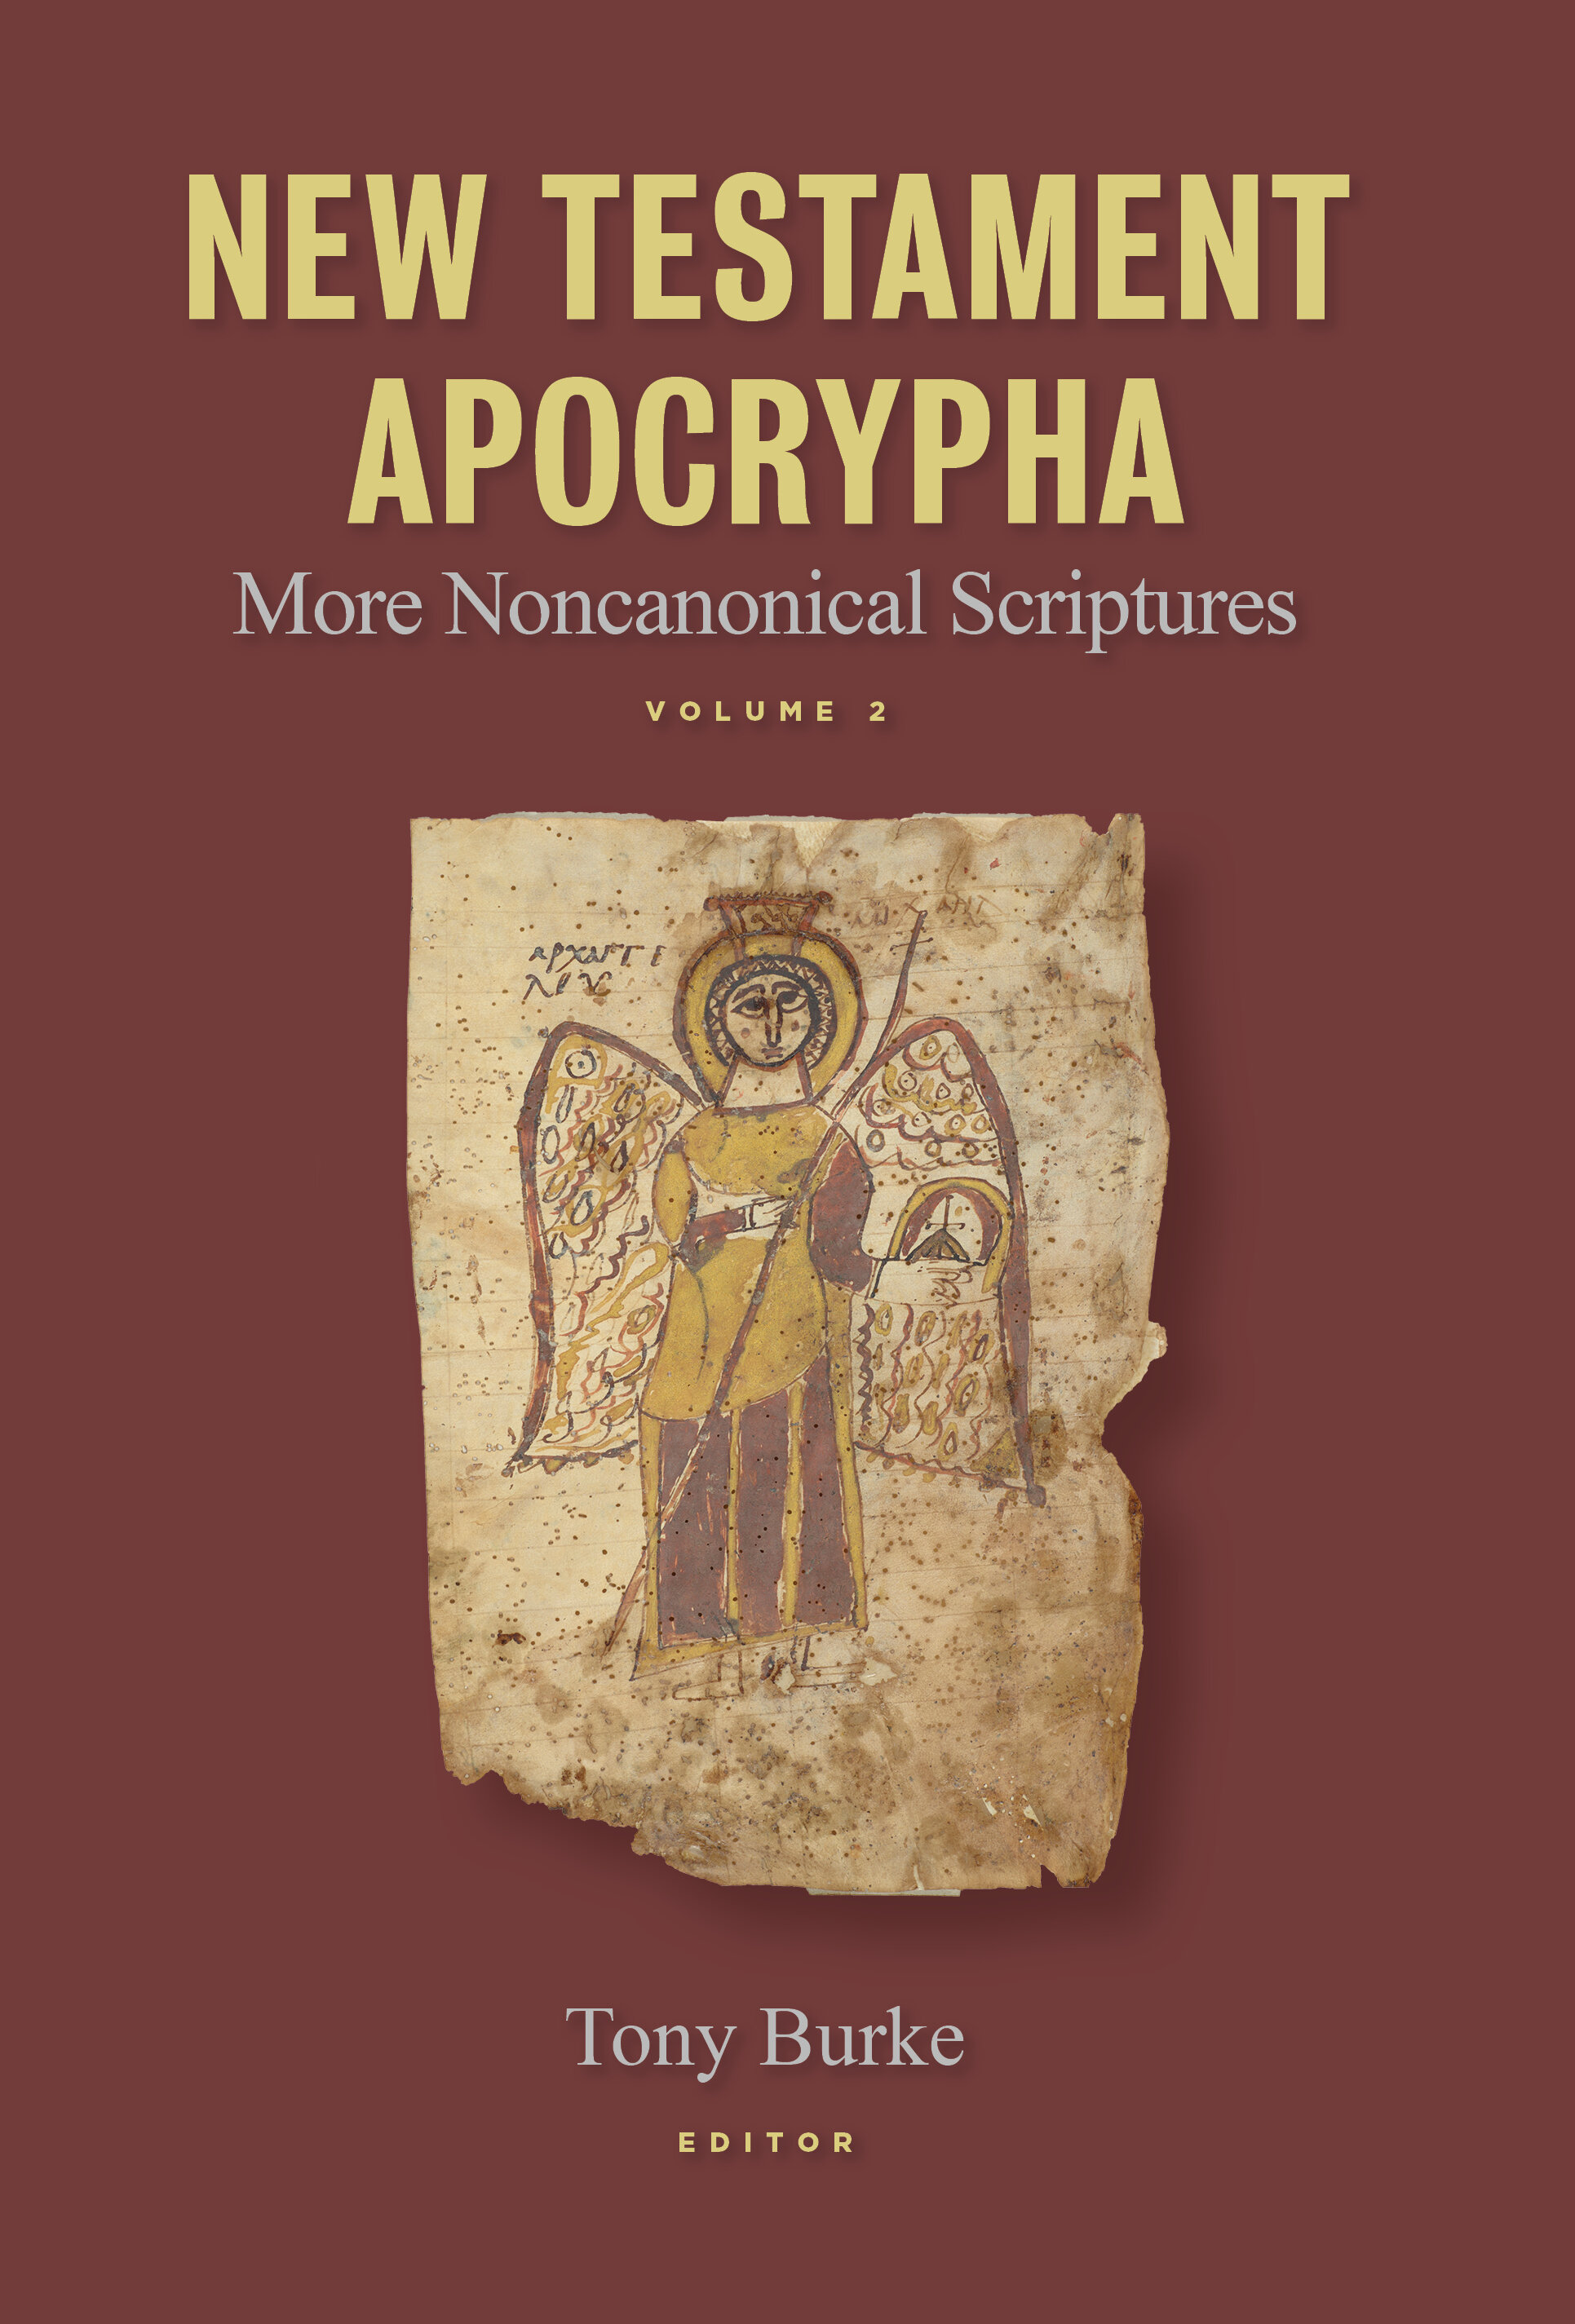 New Testament Apocrypha: More Noncanonical Scriptures, vol. 2